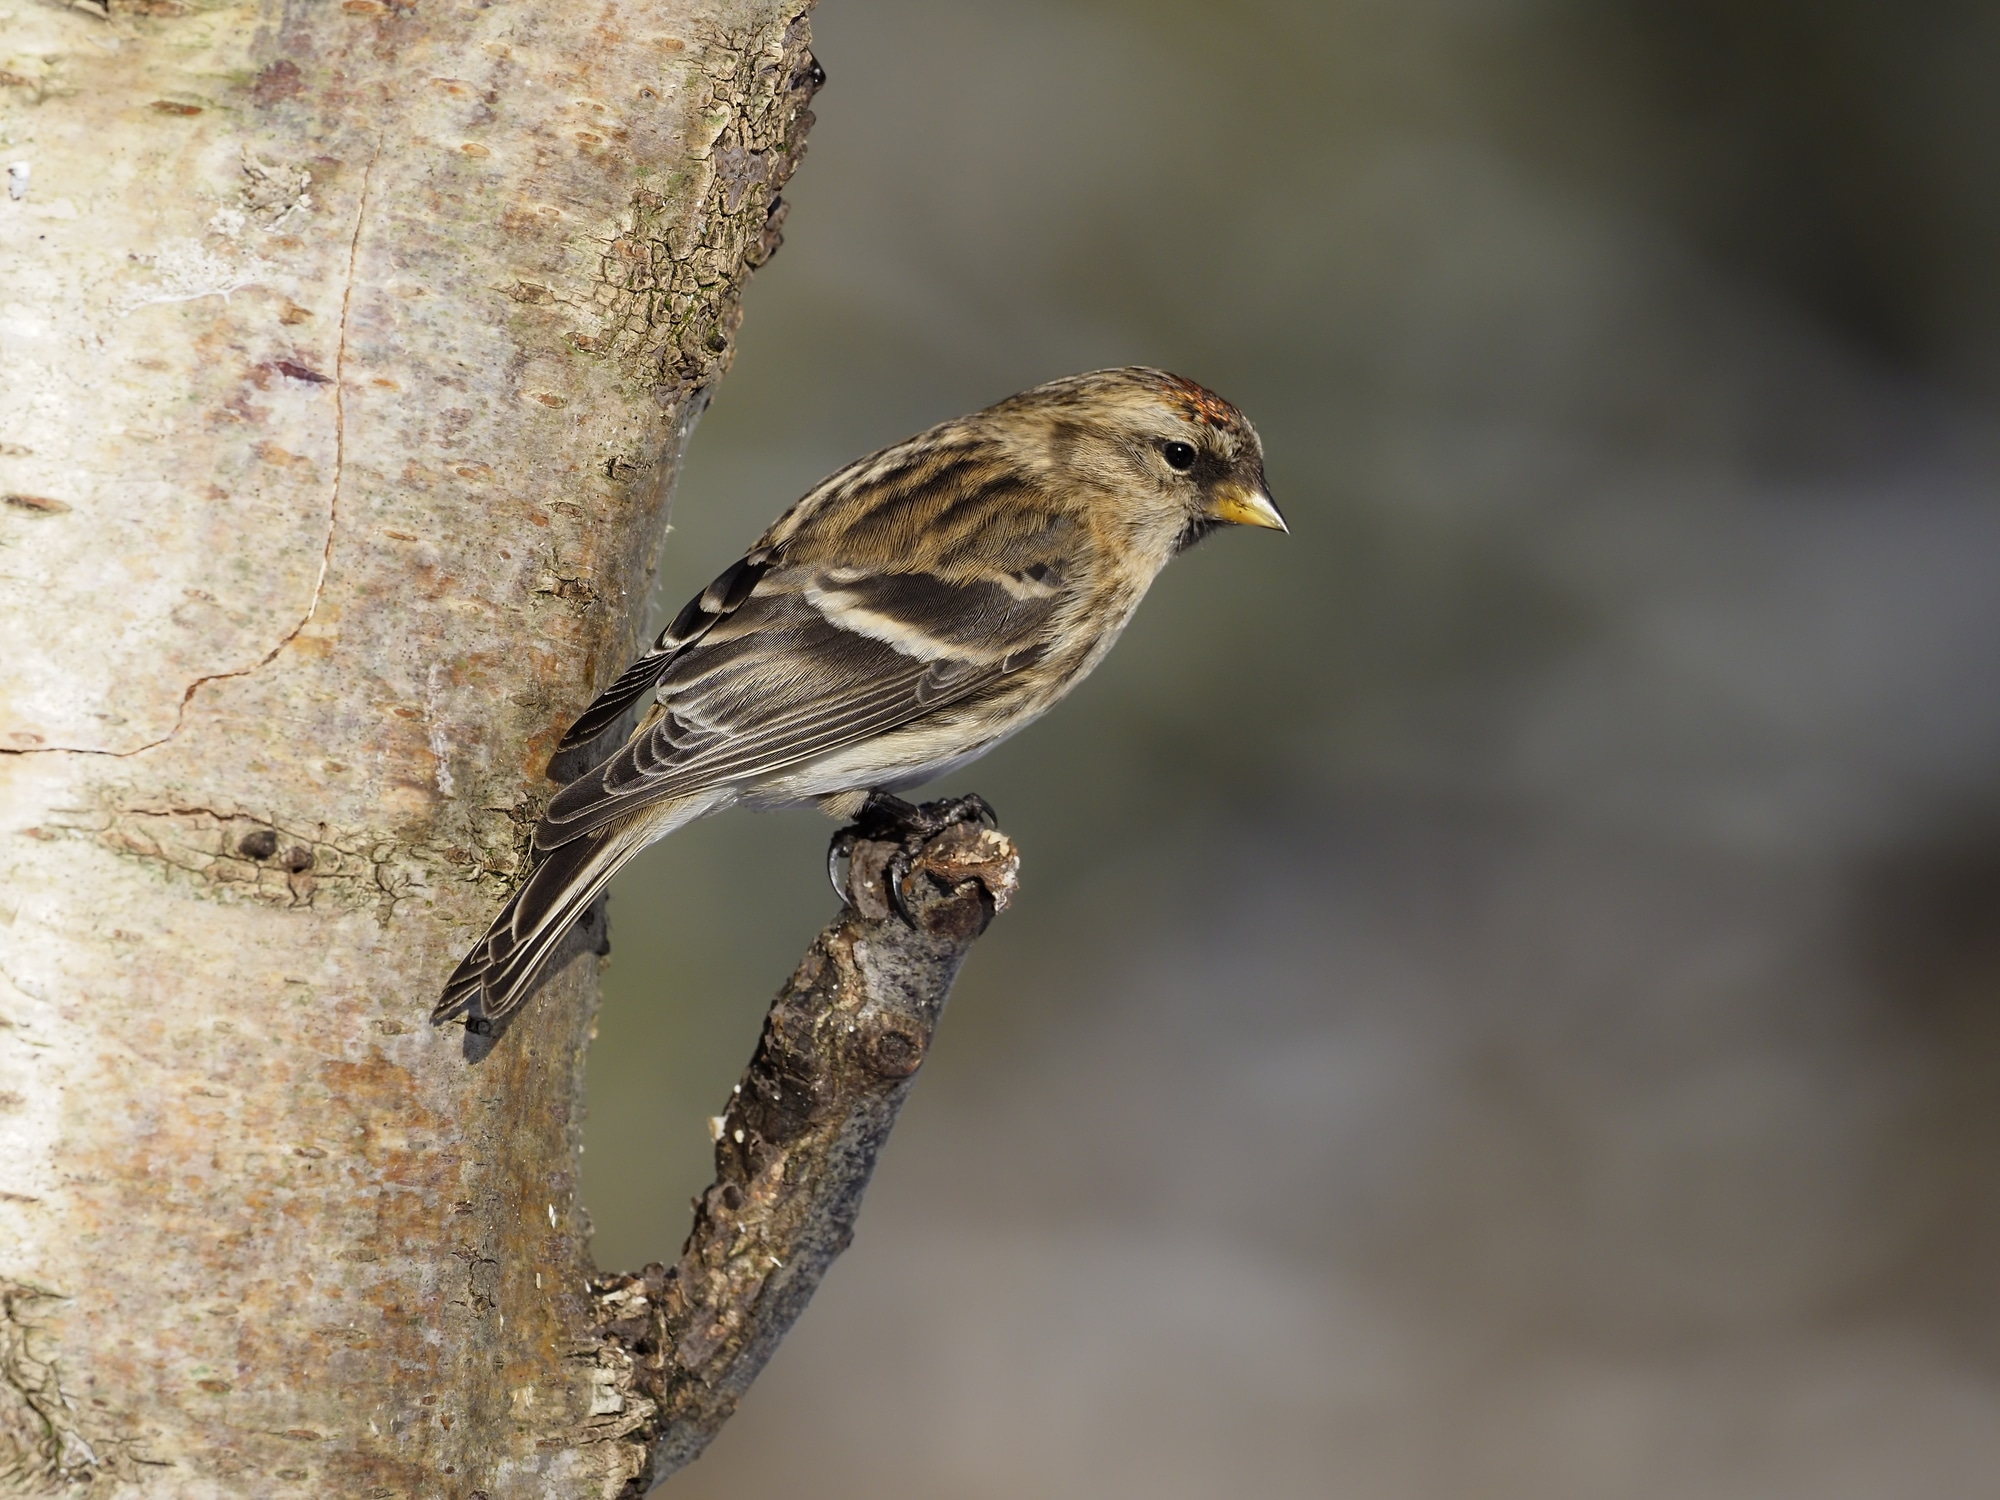 A lesser redpoll rests on a branch